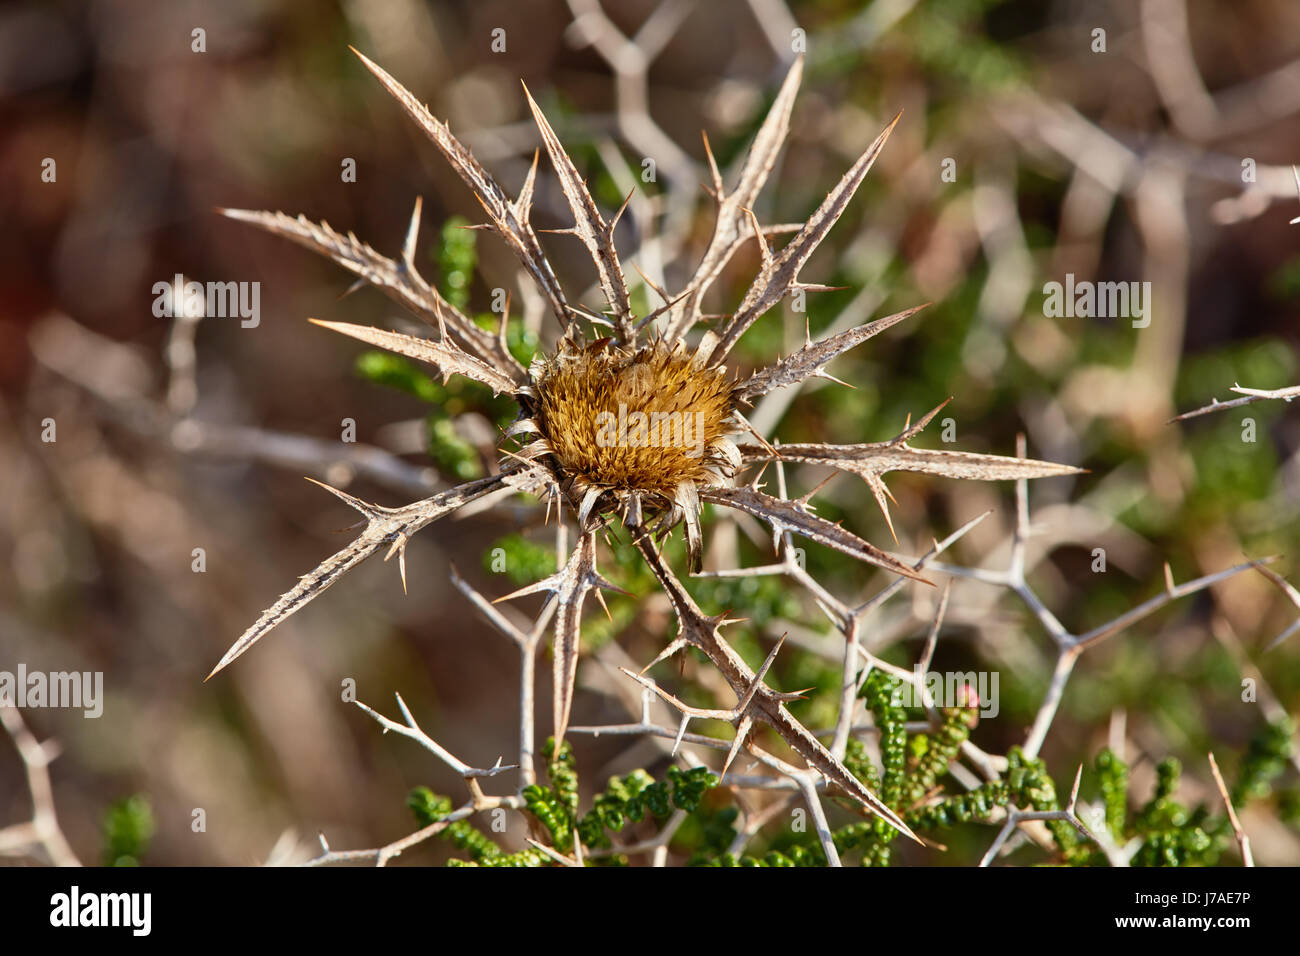 Dry Milk thistle spiked plant in the desert - Stock Image